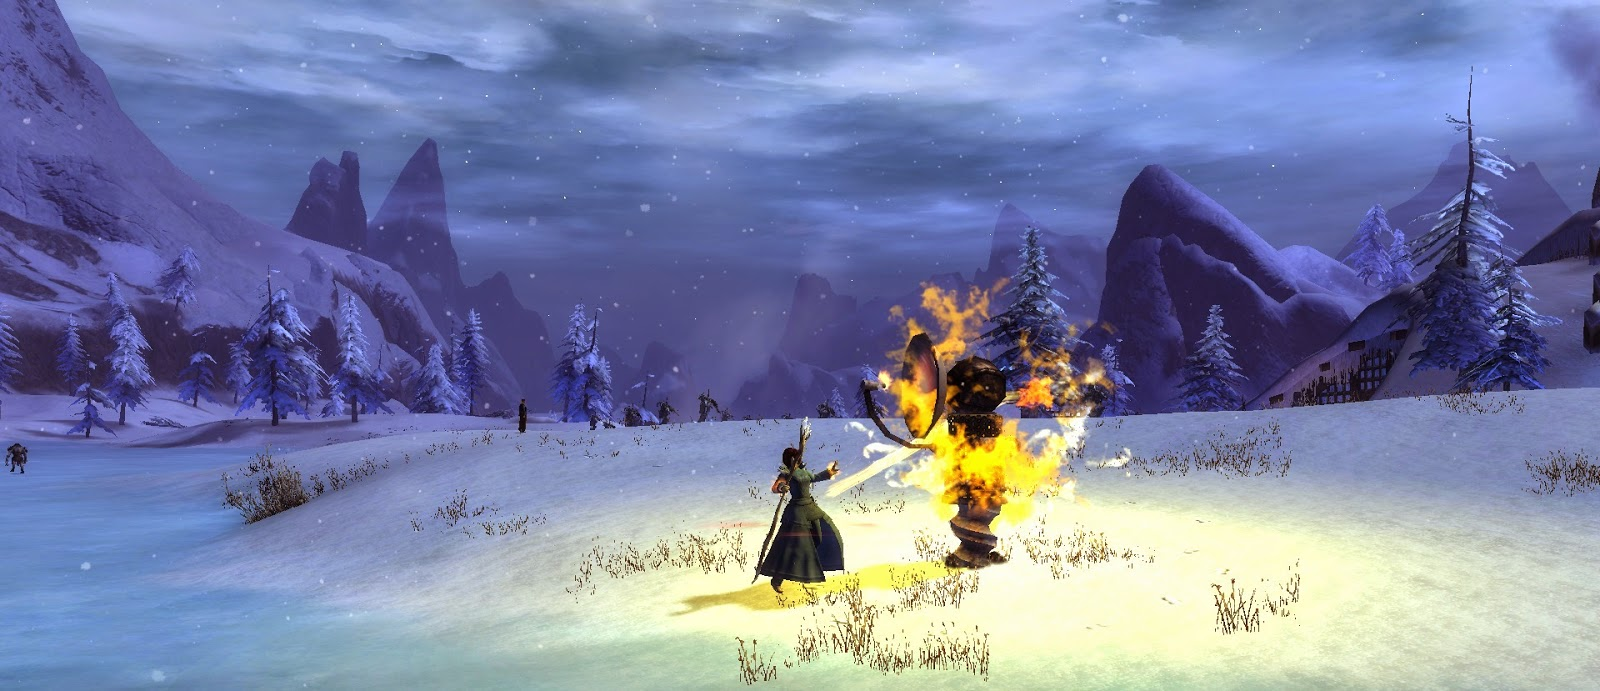 gw2 the machine how to get there